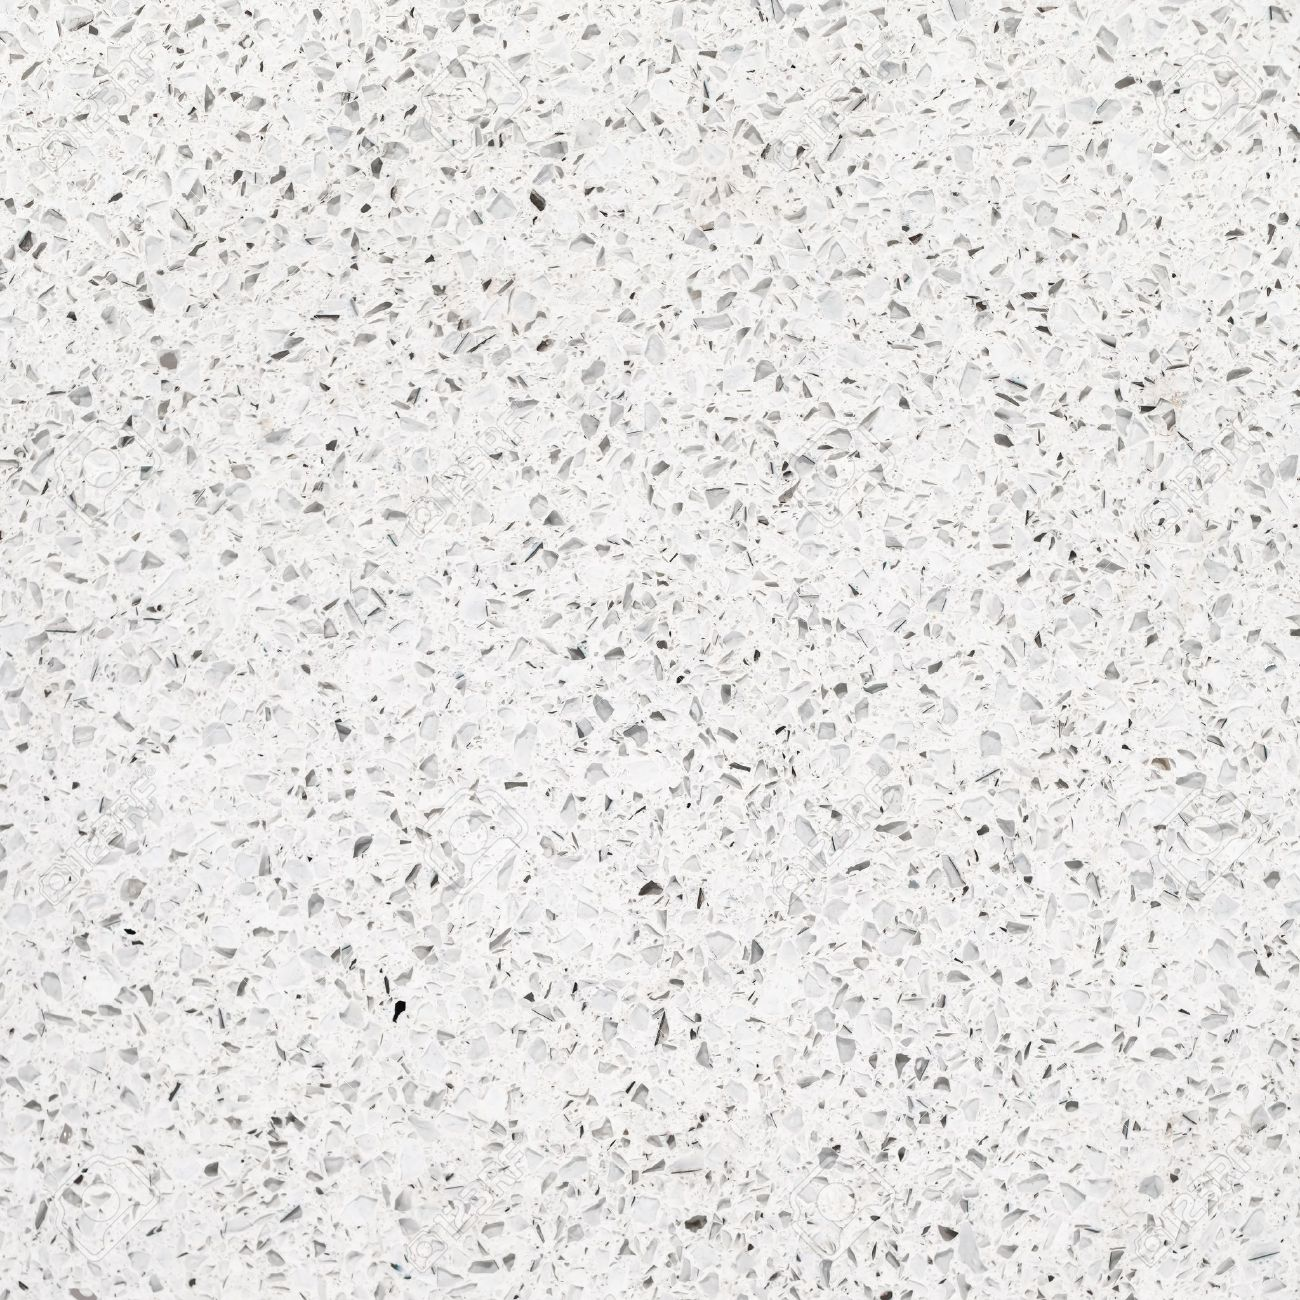 Kitchen Counter Texture Quartz Surface For Bathroom Or Kitchen White Countertop High